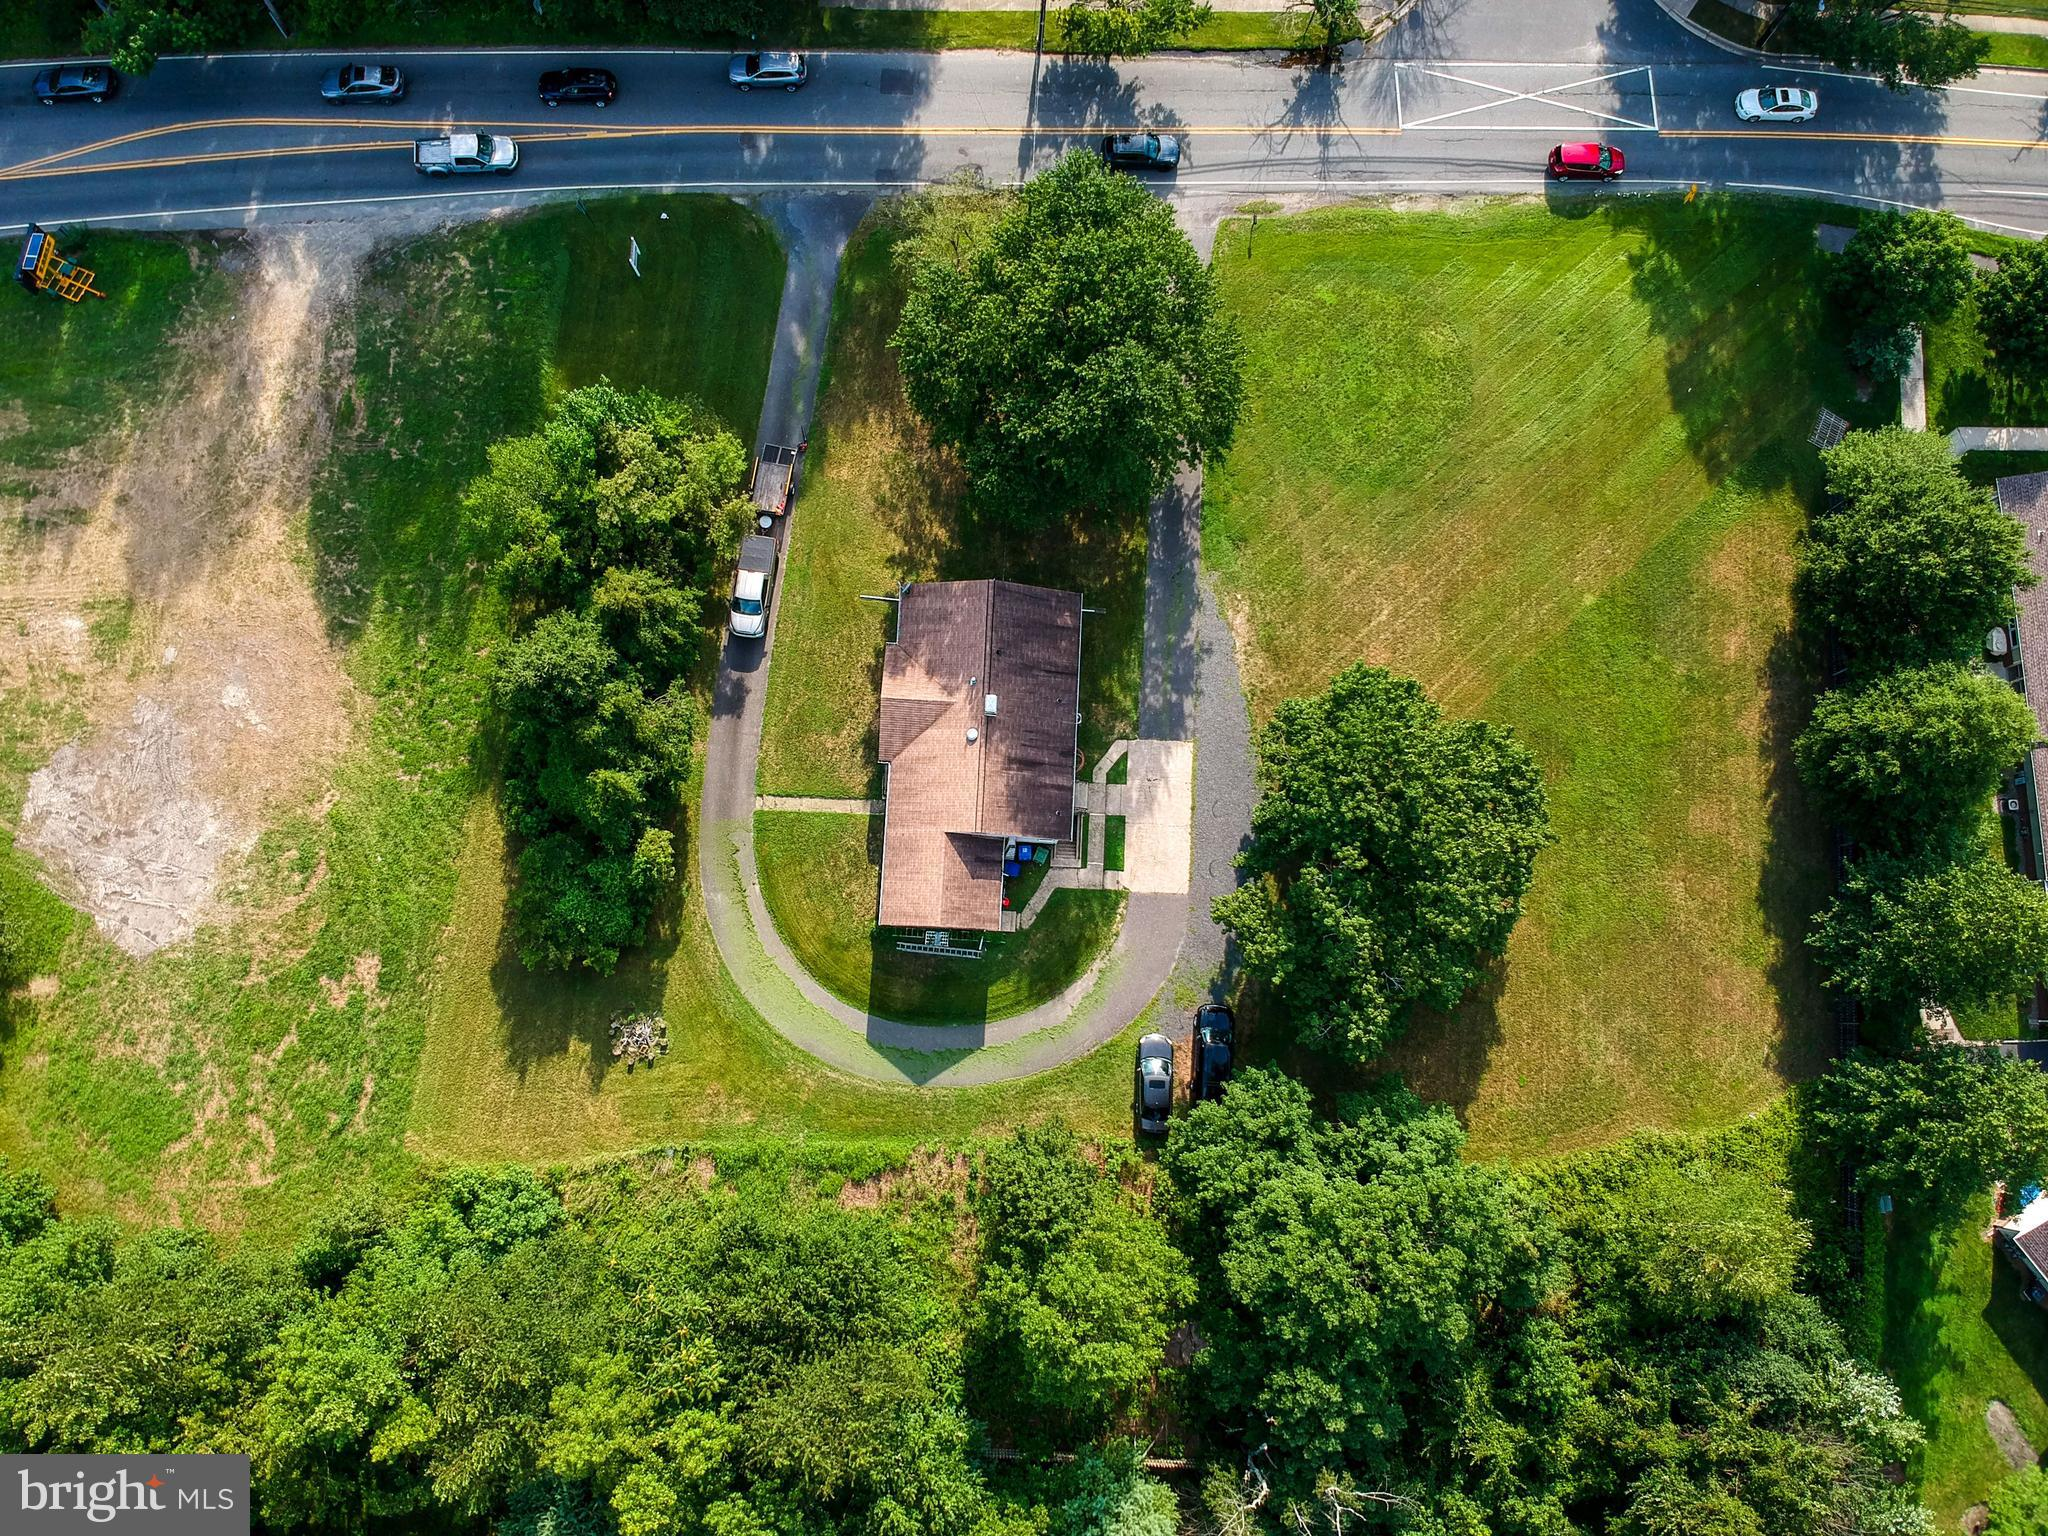 COMMERCIAL OPPORTUNITY! One acre of open land on the corner of 2 highly traveled roads, Route 70 and North Elmwood Road.  HIGH visibility. VALUE is in the LAND ONLY. Perfect location for your professional office with easy access for all your clients. This is a rare opportunity in a rapidly expanding community.